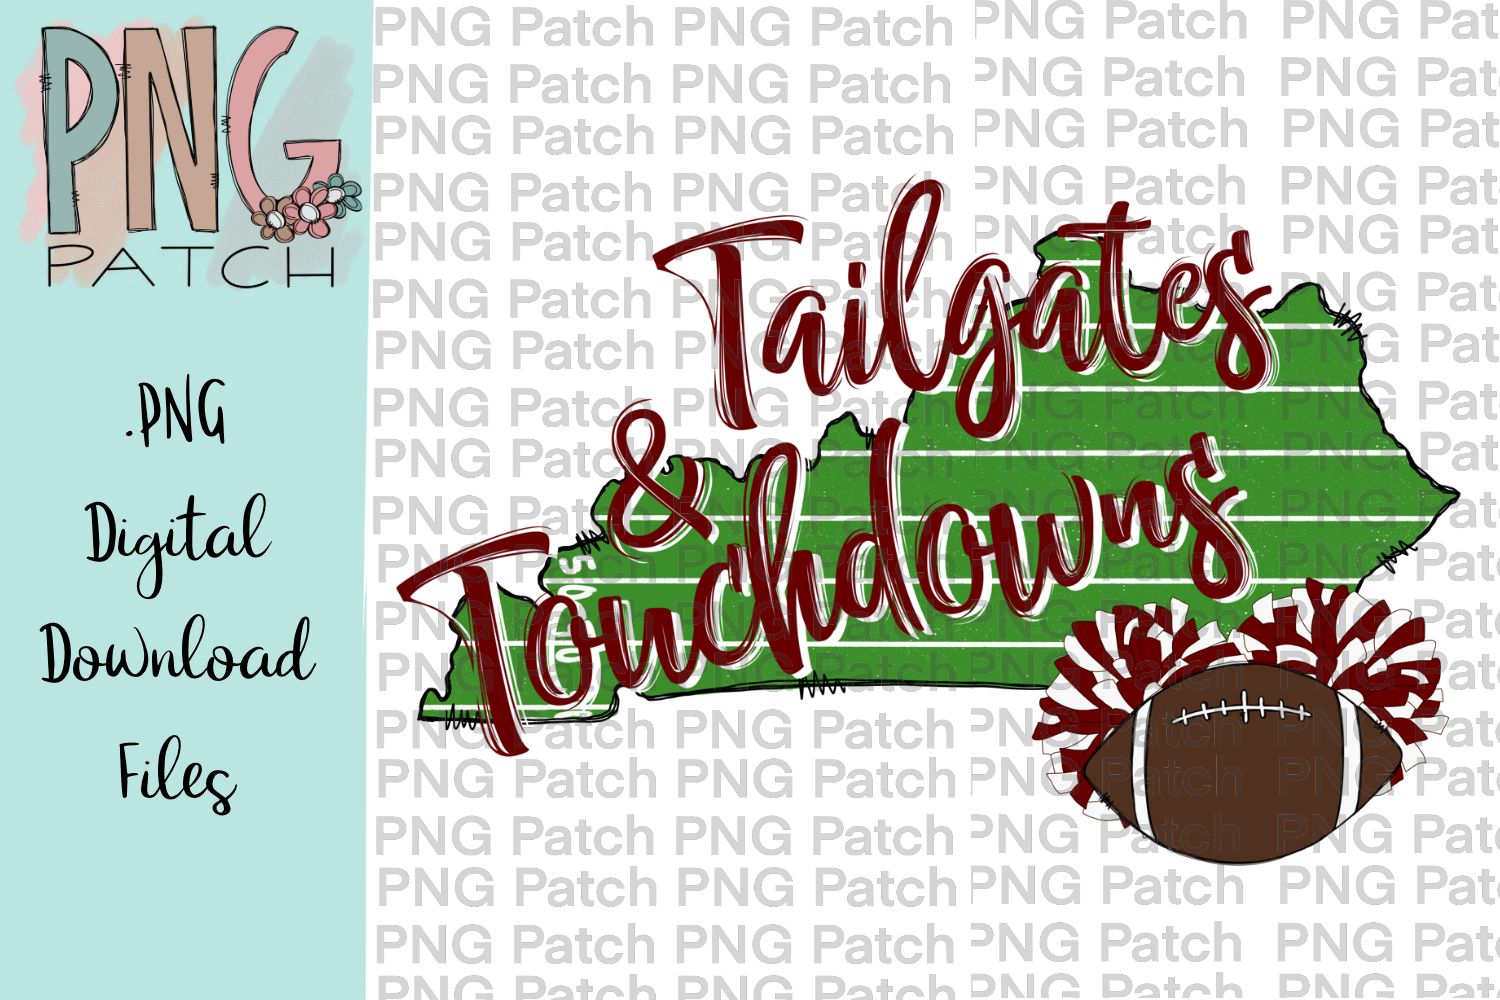 Kentucky Football Background Maroon and White, PNG File example image 1